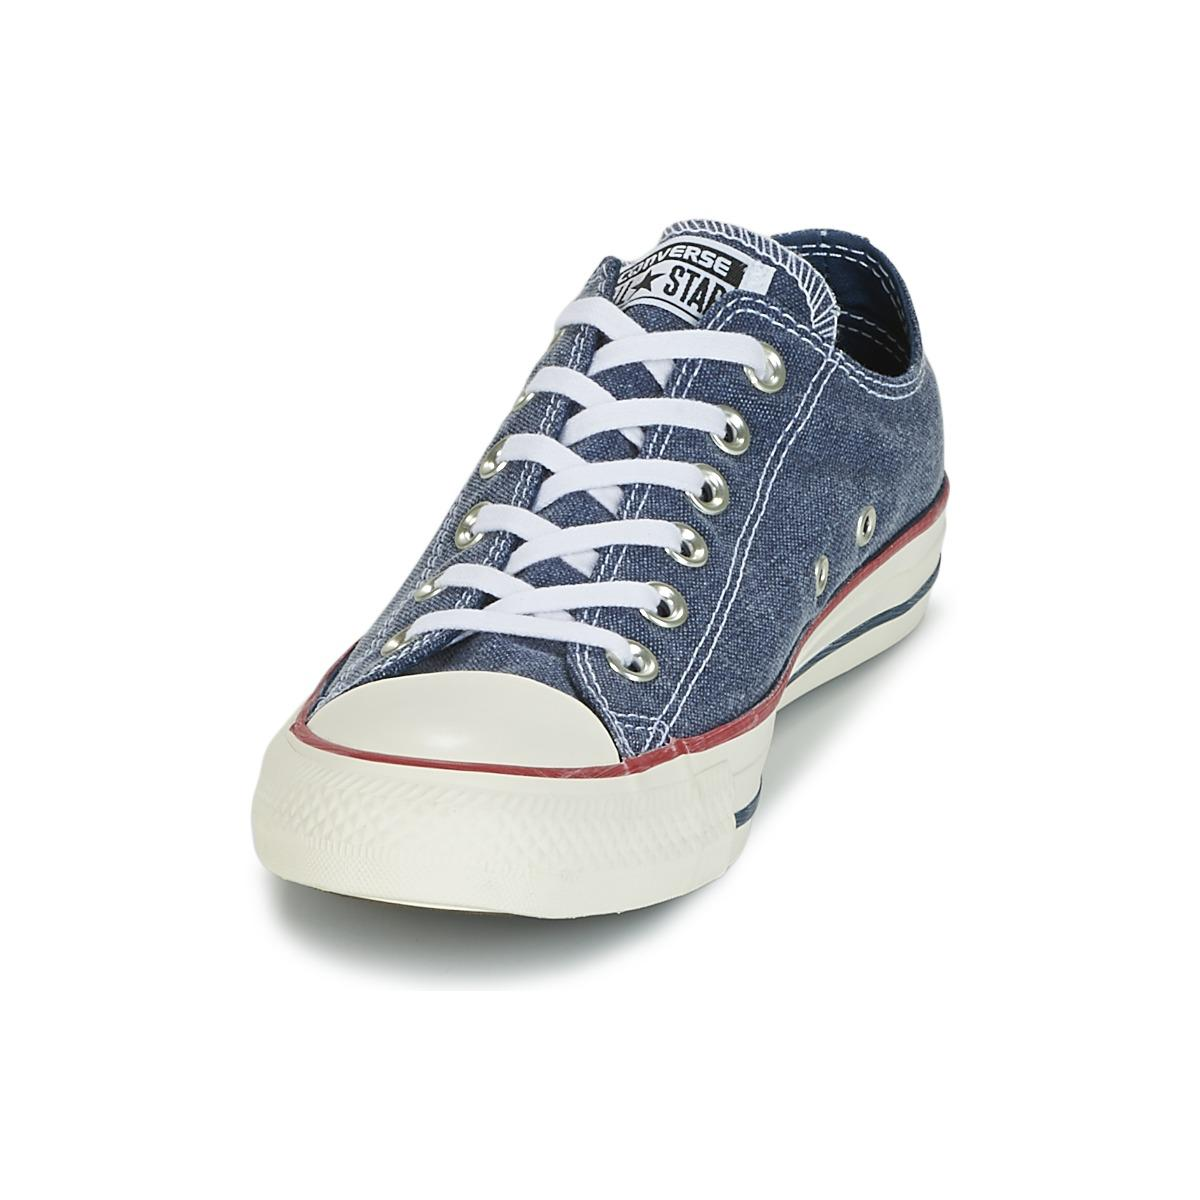 34d3fd8c0df4 Converse - Chuck Taylor All Star Ox Stone Wash Men s Shoes (trainers) In  Blue. View fullscreen